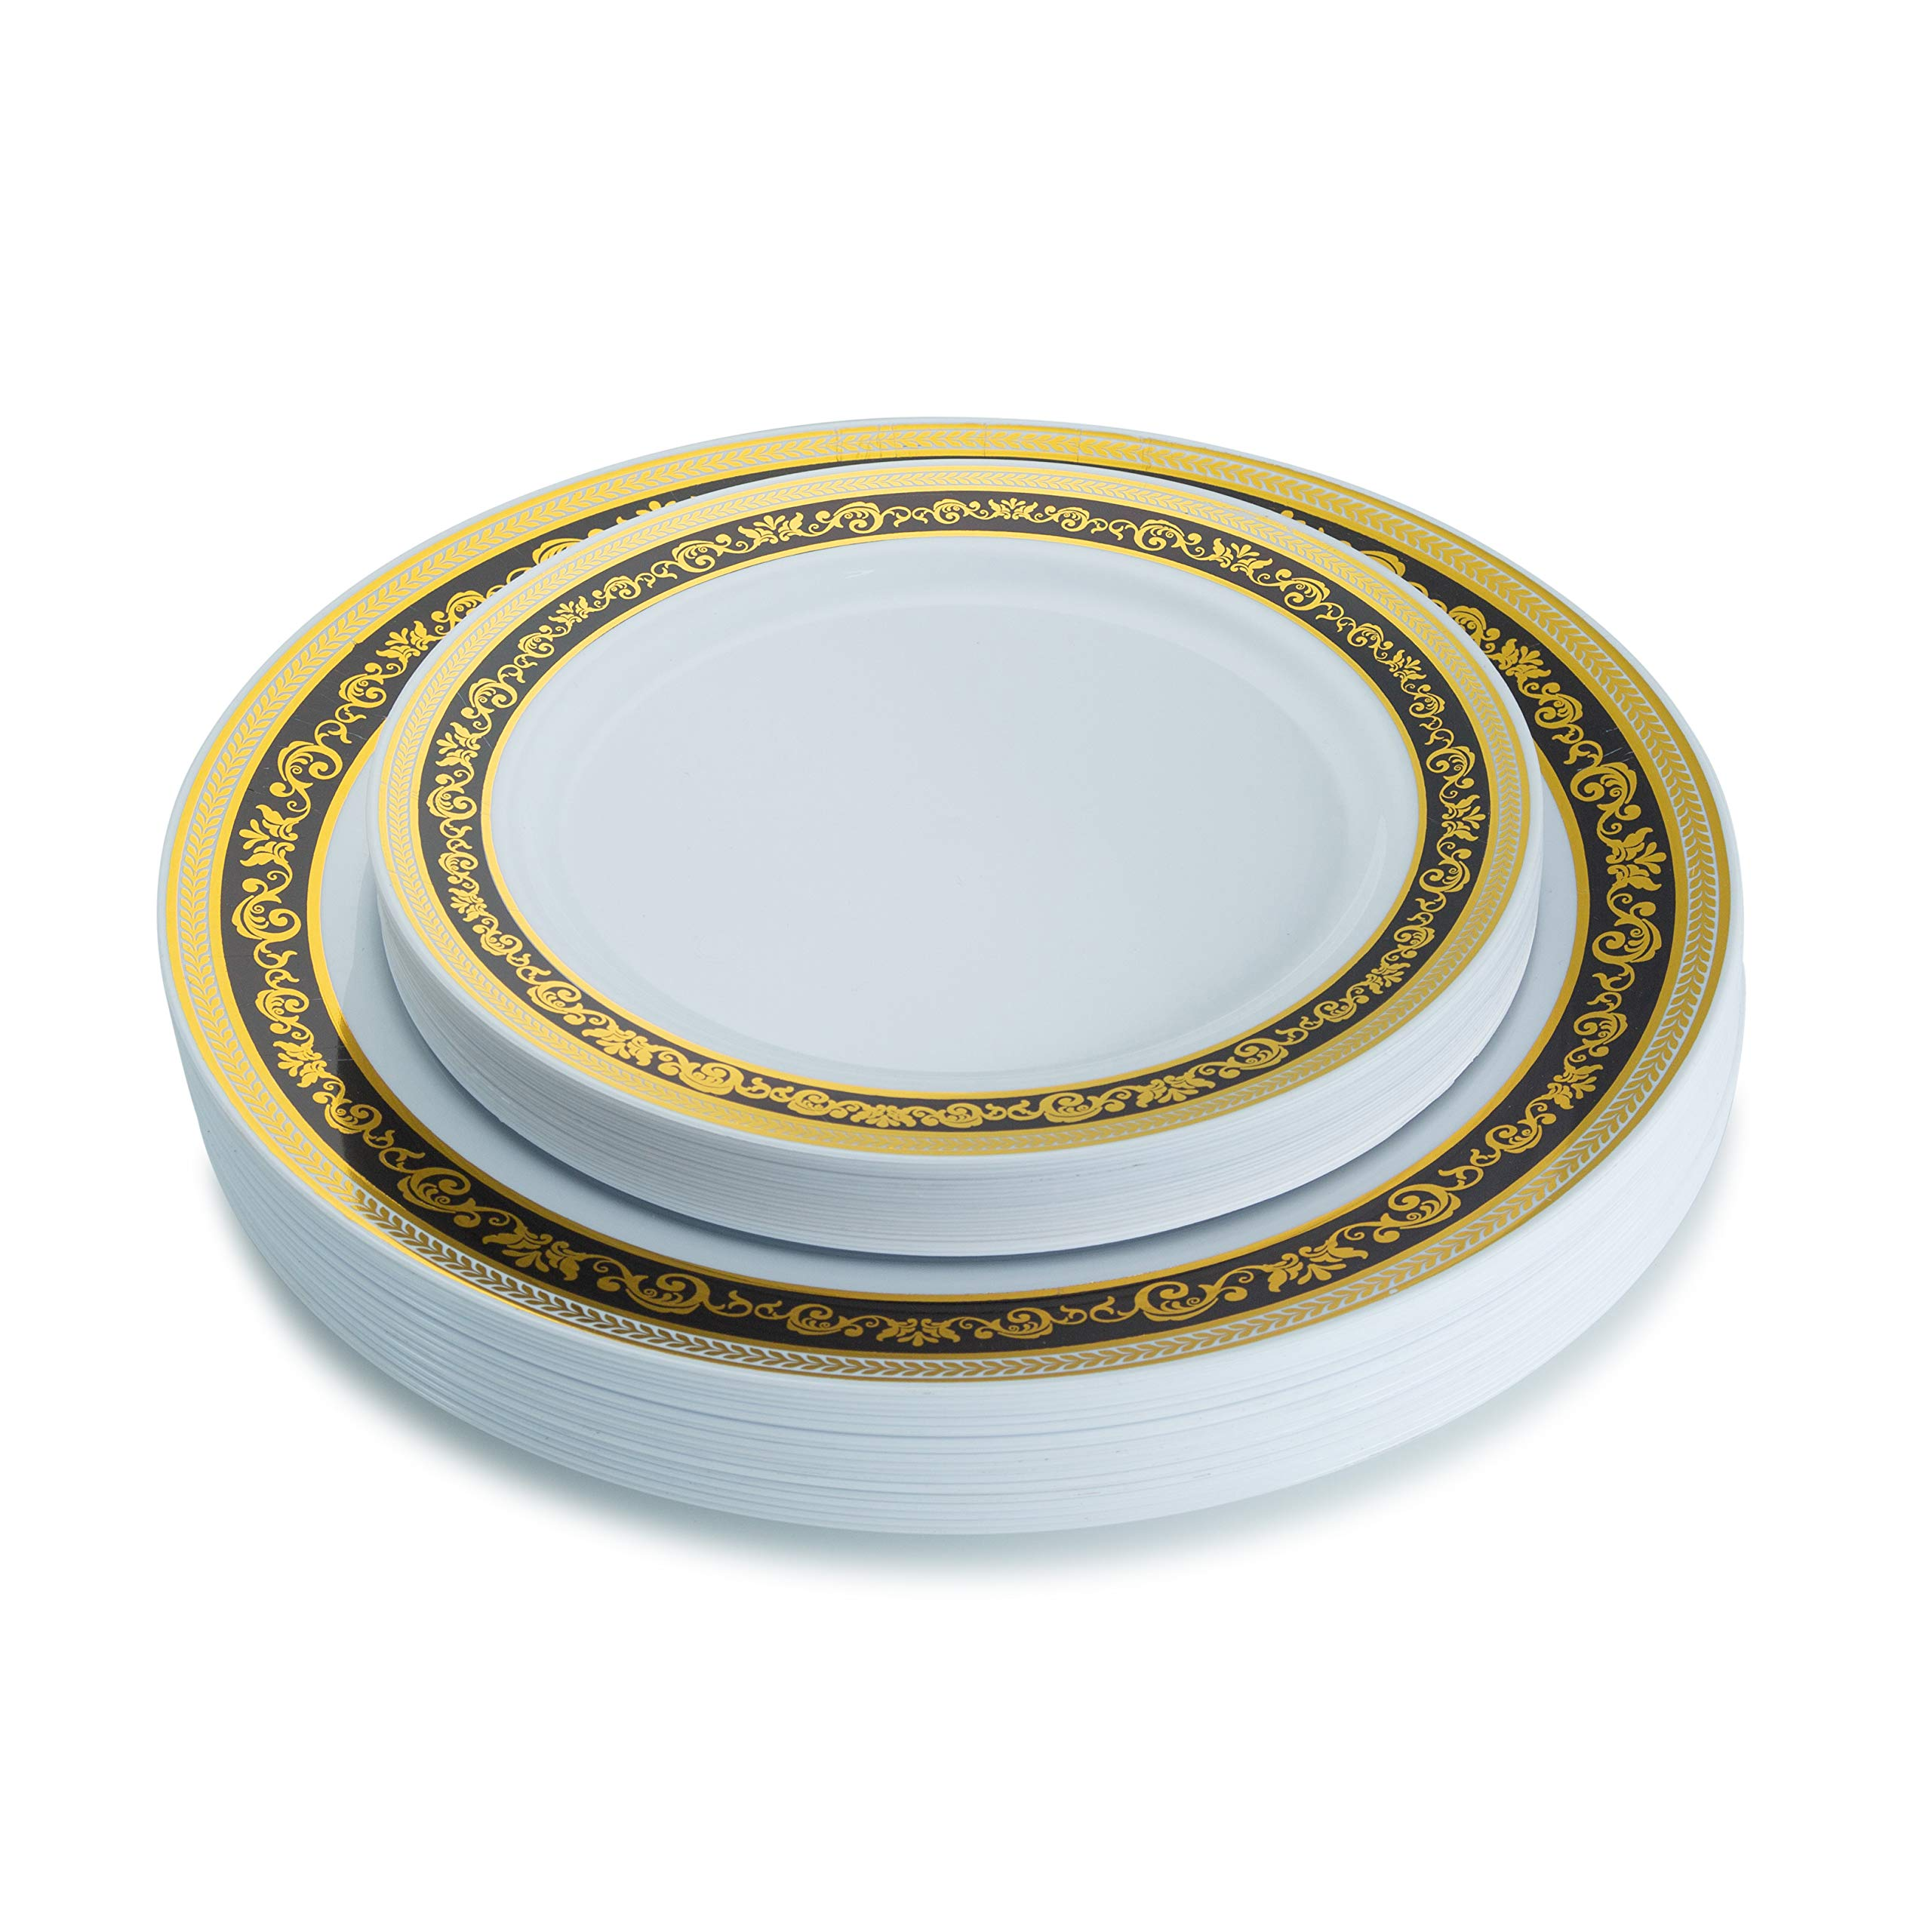 In Posh Setting Lace Collection Combo Pack China Look White//Gold Plastic Plates